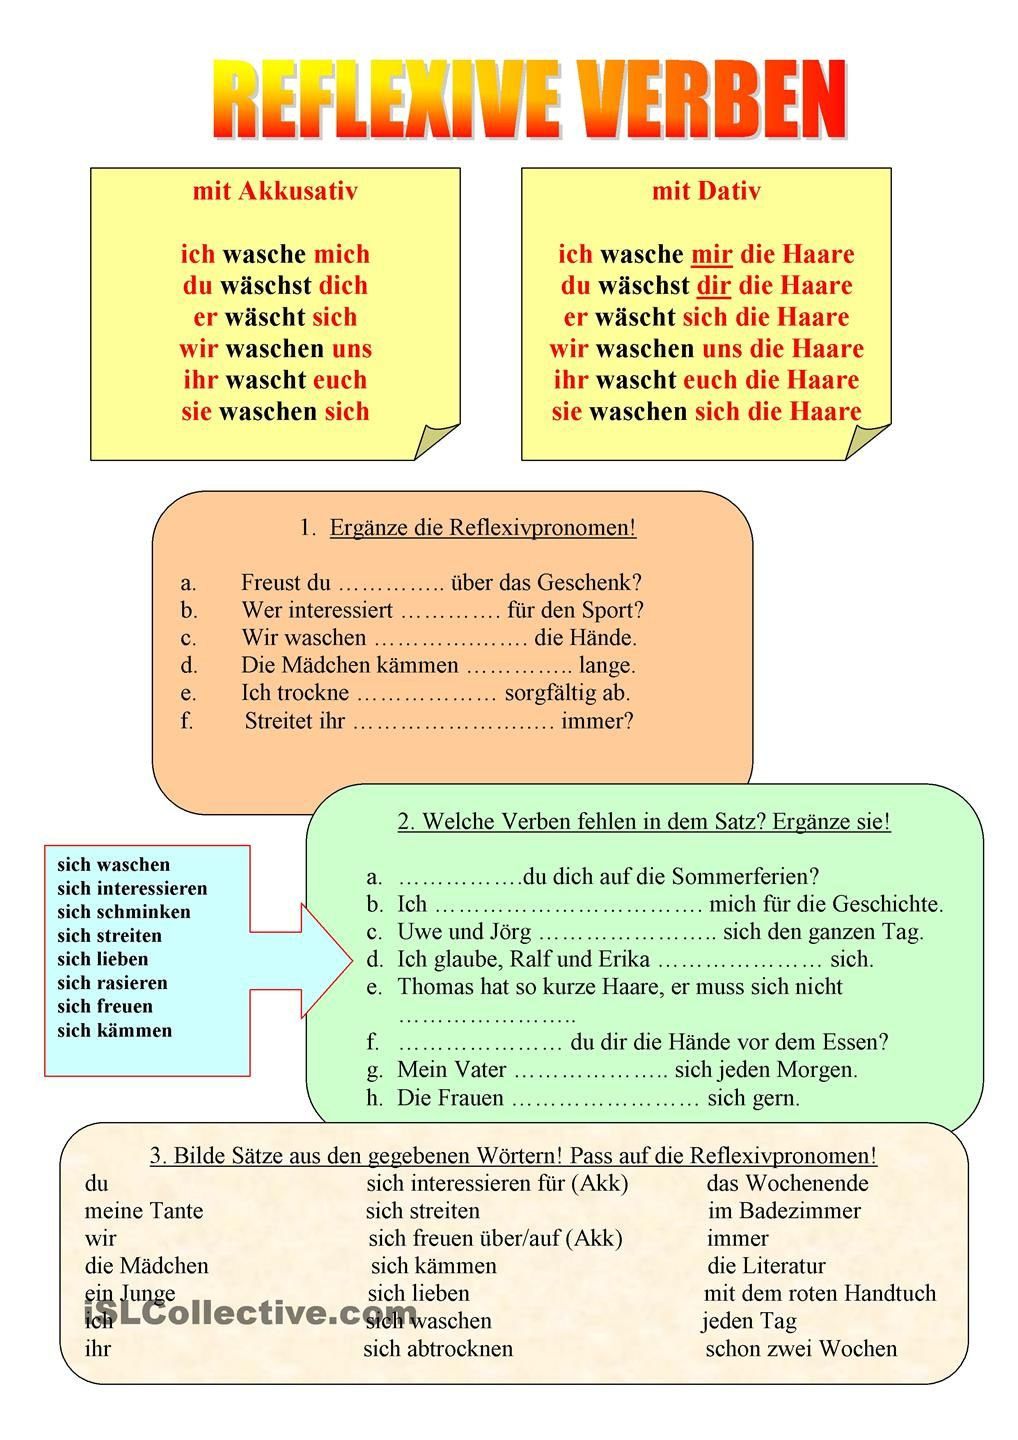 Reflexive Verben | Languages | Pinterest | German, German language ...